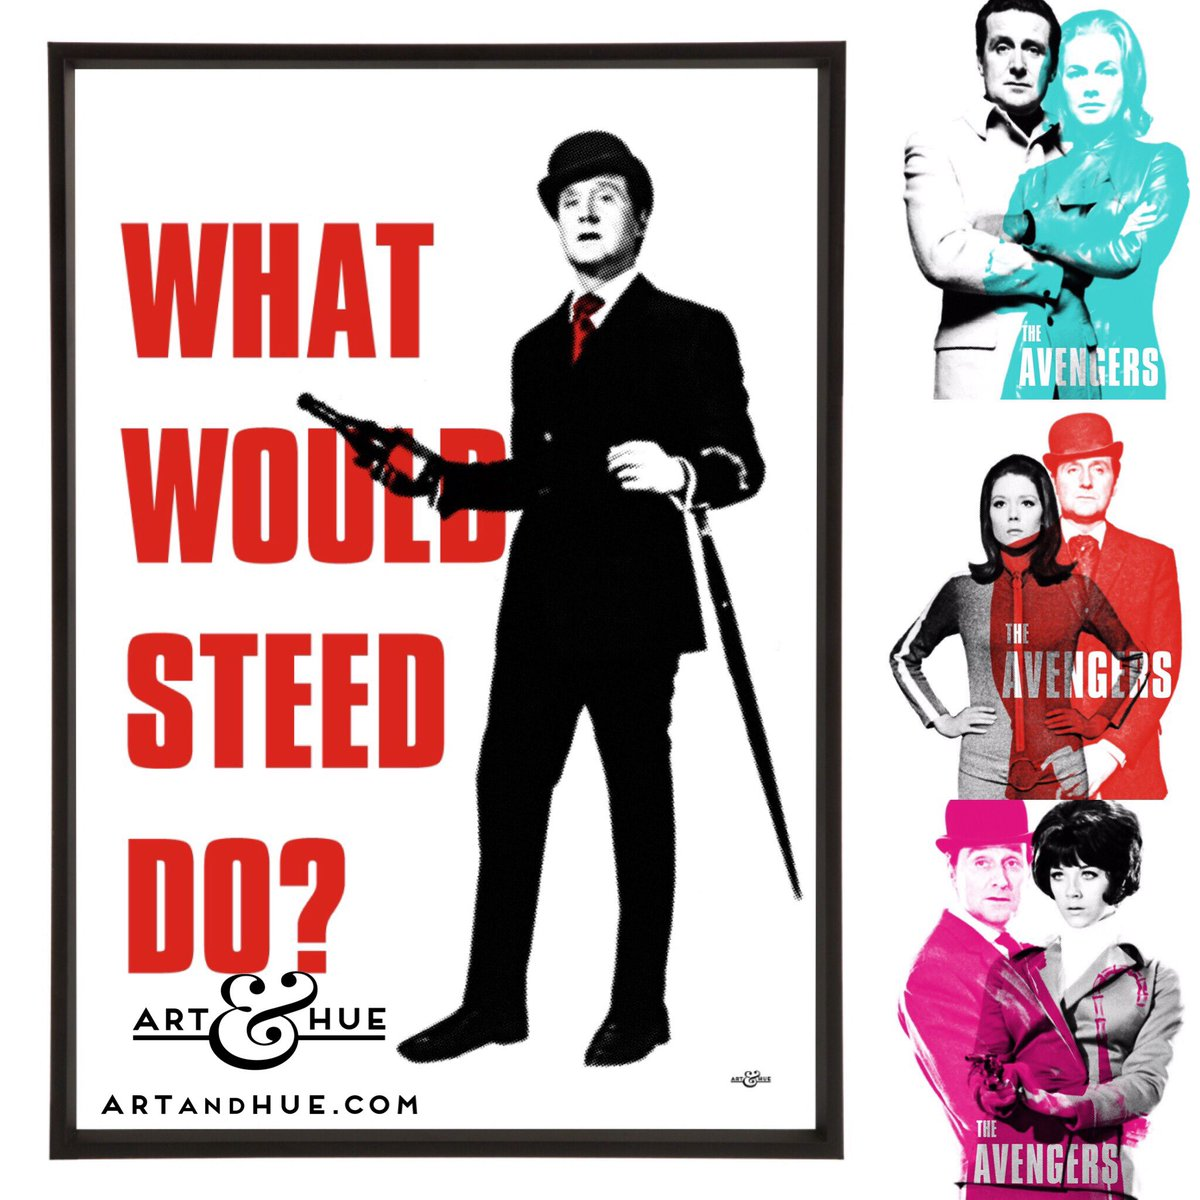 #WhatWould #JohnSteed Do? Open the #champagne  http:// artandhue.com/theavengers/  &nbsp;   #FridayNight #PatrickMacnee #PopArt #FridayFeeling #TheAvengers<br>http://pic.twitter.com/AAdLqP97CL